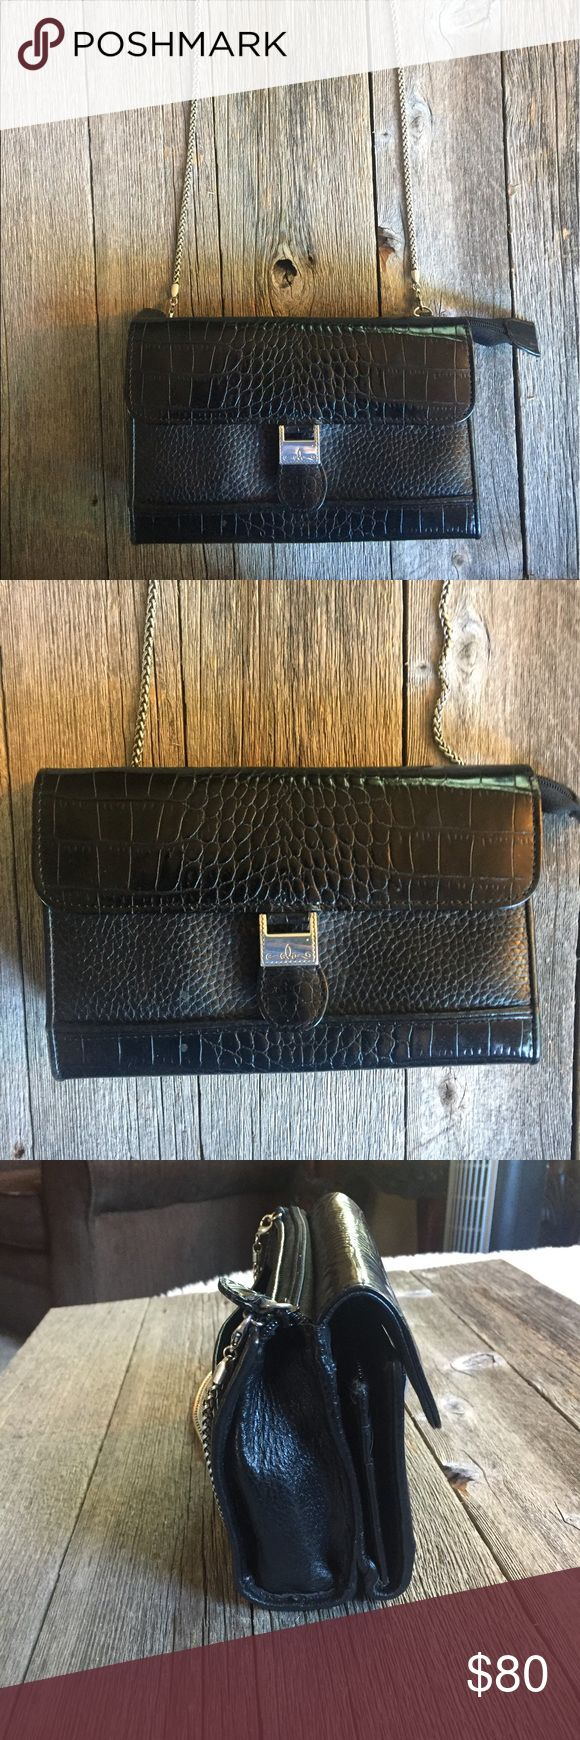 Brighton black purse with removable chain strap Black • Brighton • purse • folds open • chain is removable to make into a clutch • great condition • lots of pockets and zipper storage to stay organized • 7.5 inches x 4.5 inches Brighton Bags